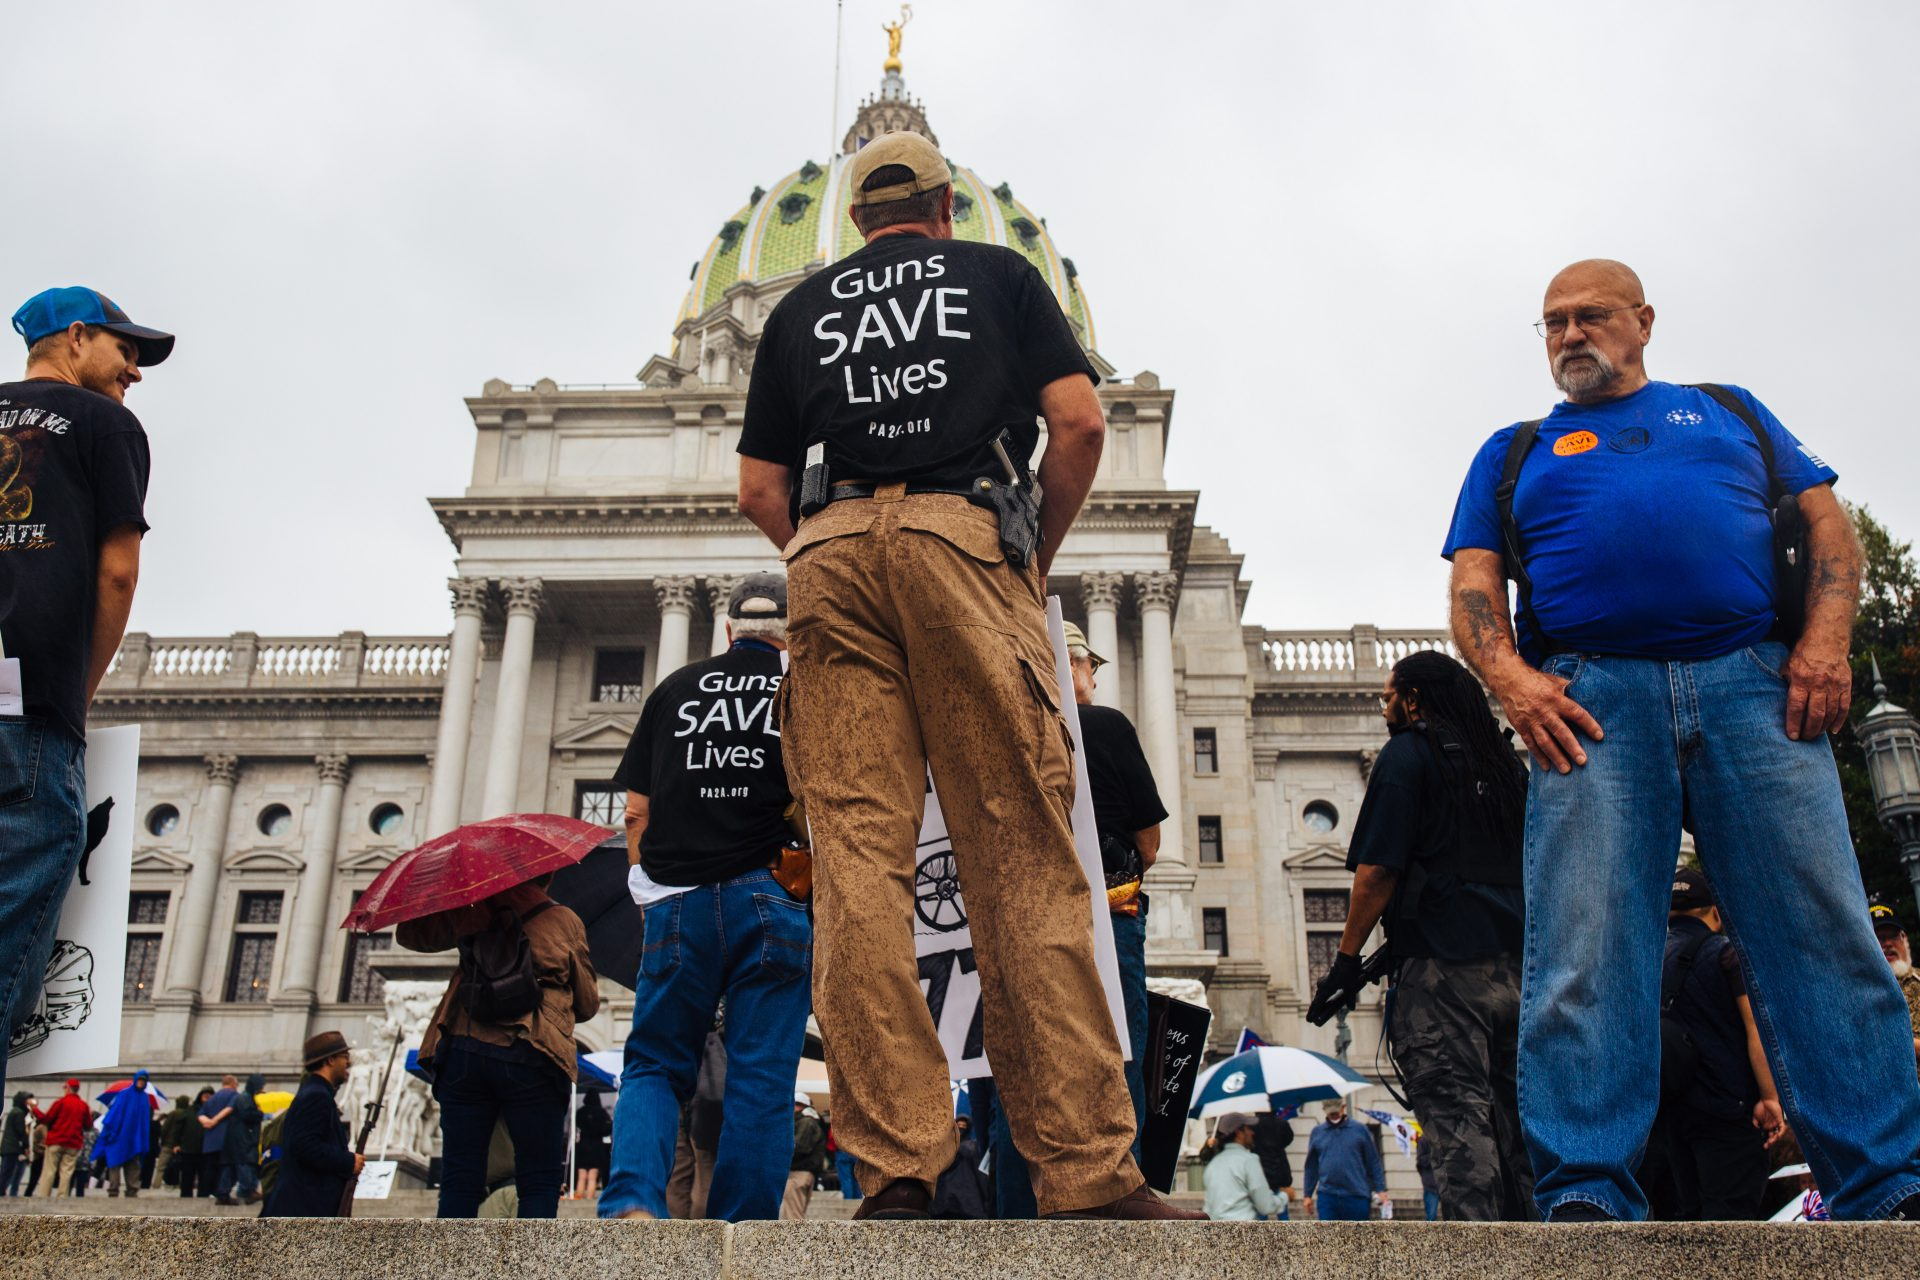 2nd Amendment Rally attendees carry guns and signs on the Capitol steps in Harrisburg, Pa., on September 29, 2020.